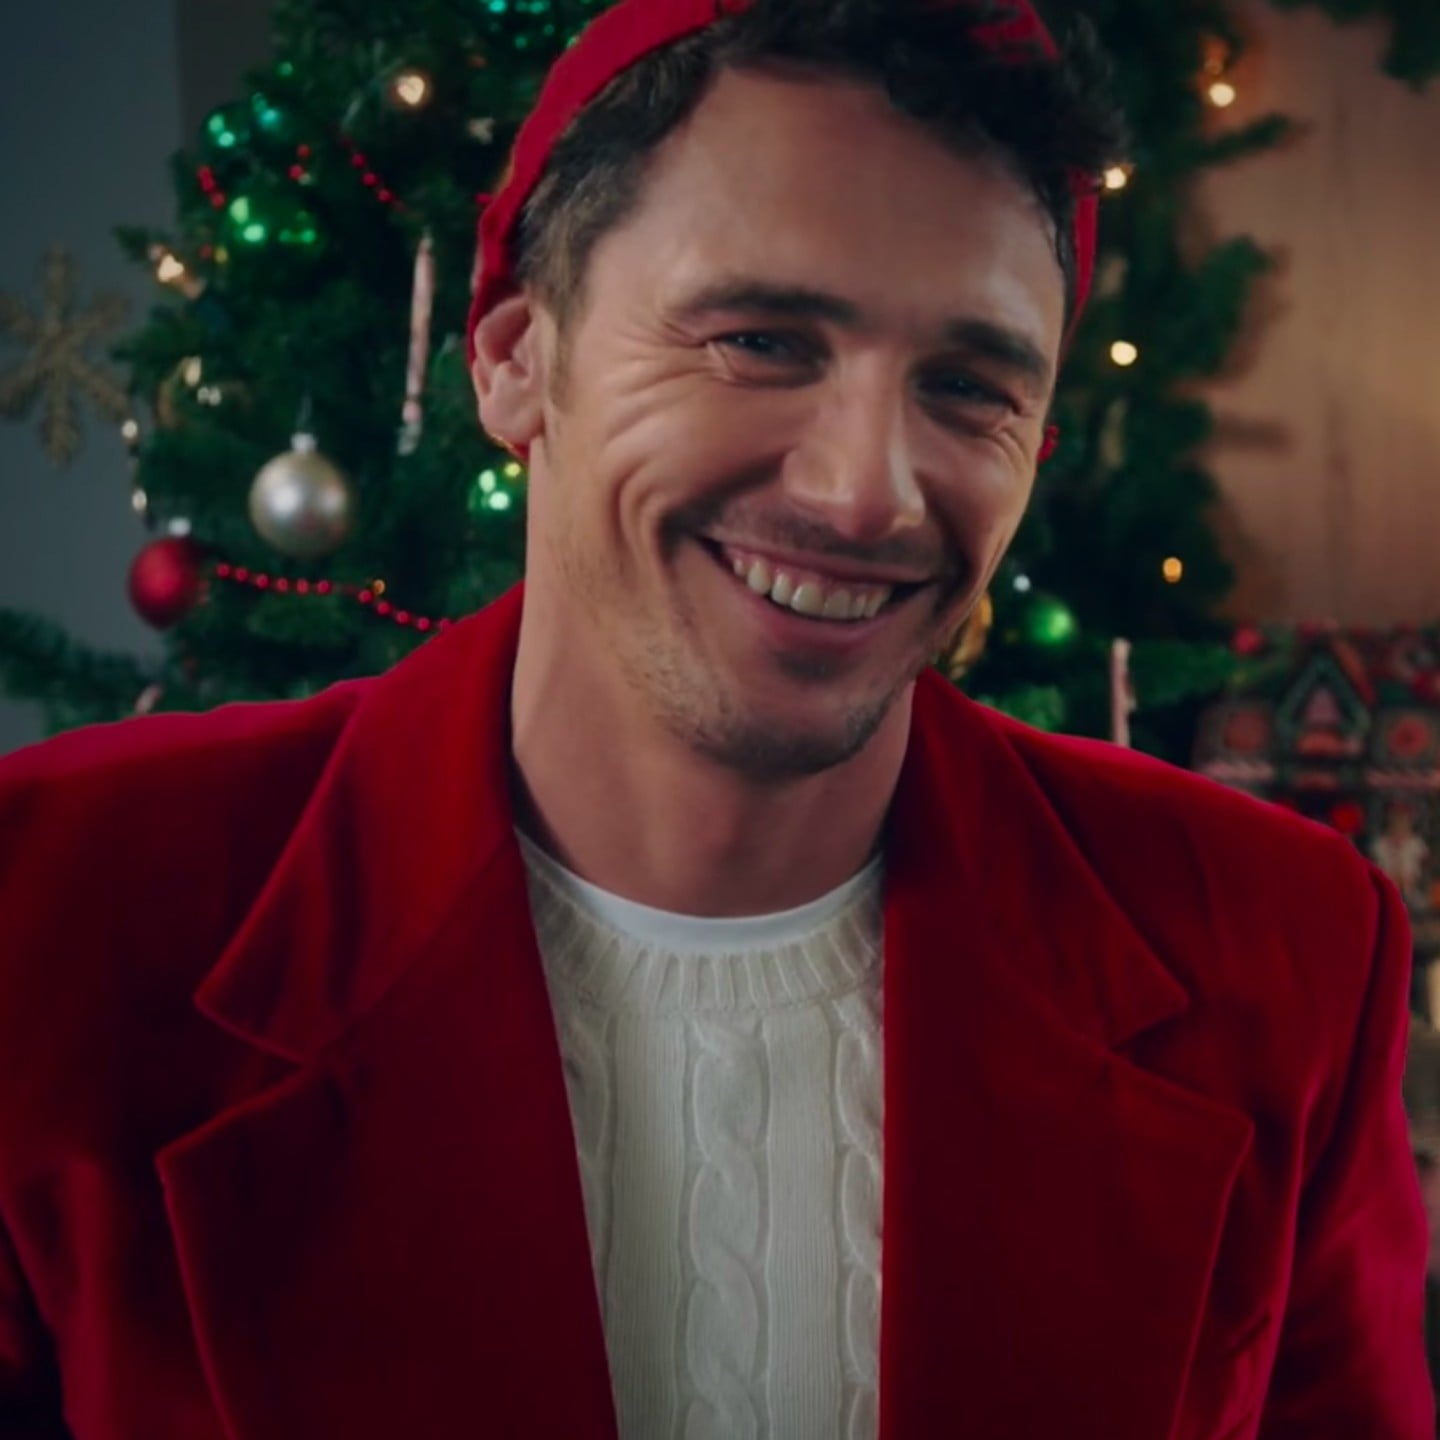 James Franco SNL Hallmark Channel Christmas Skit | POPSUGAR ...